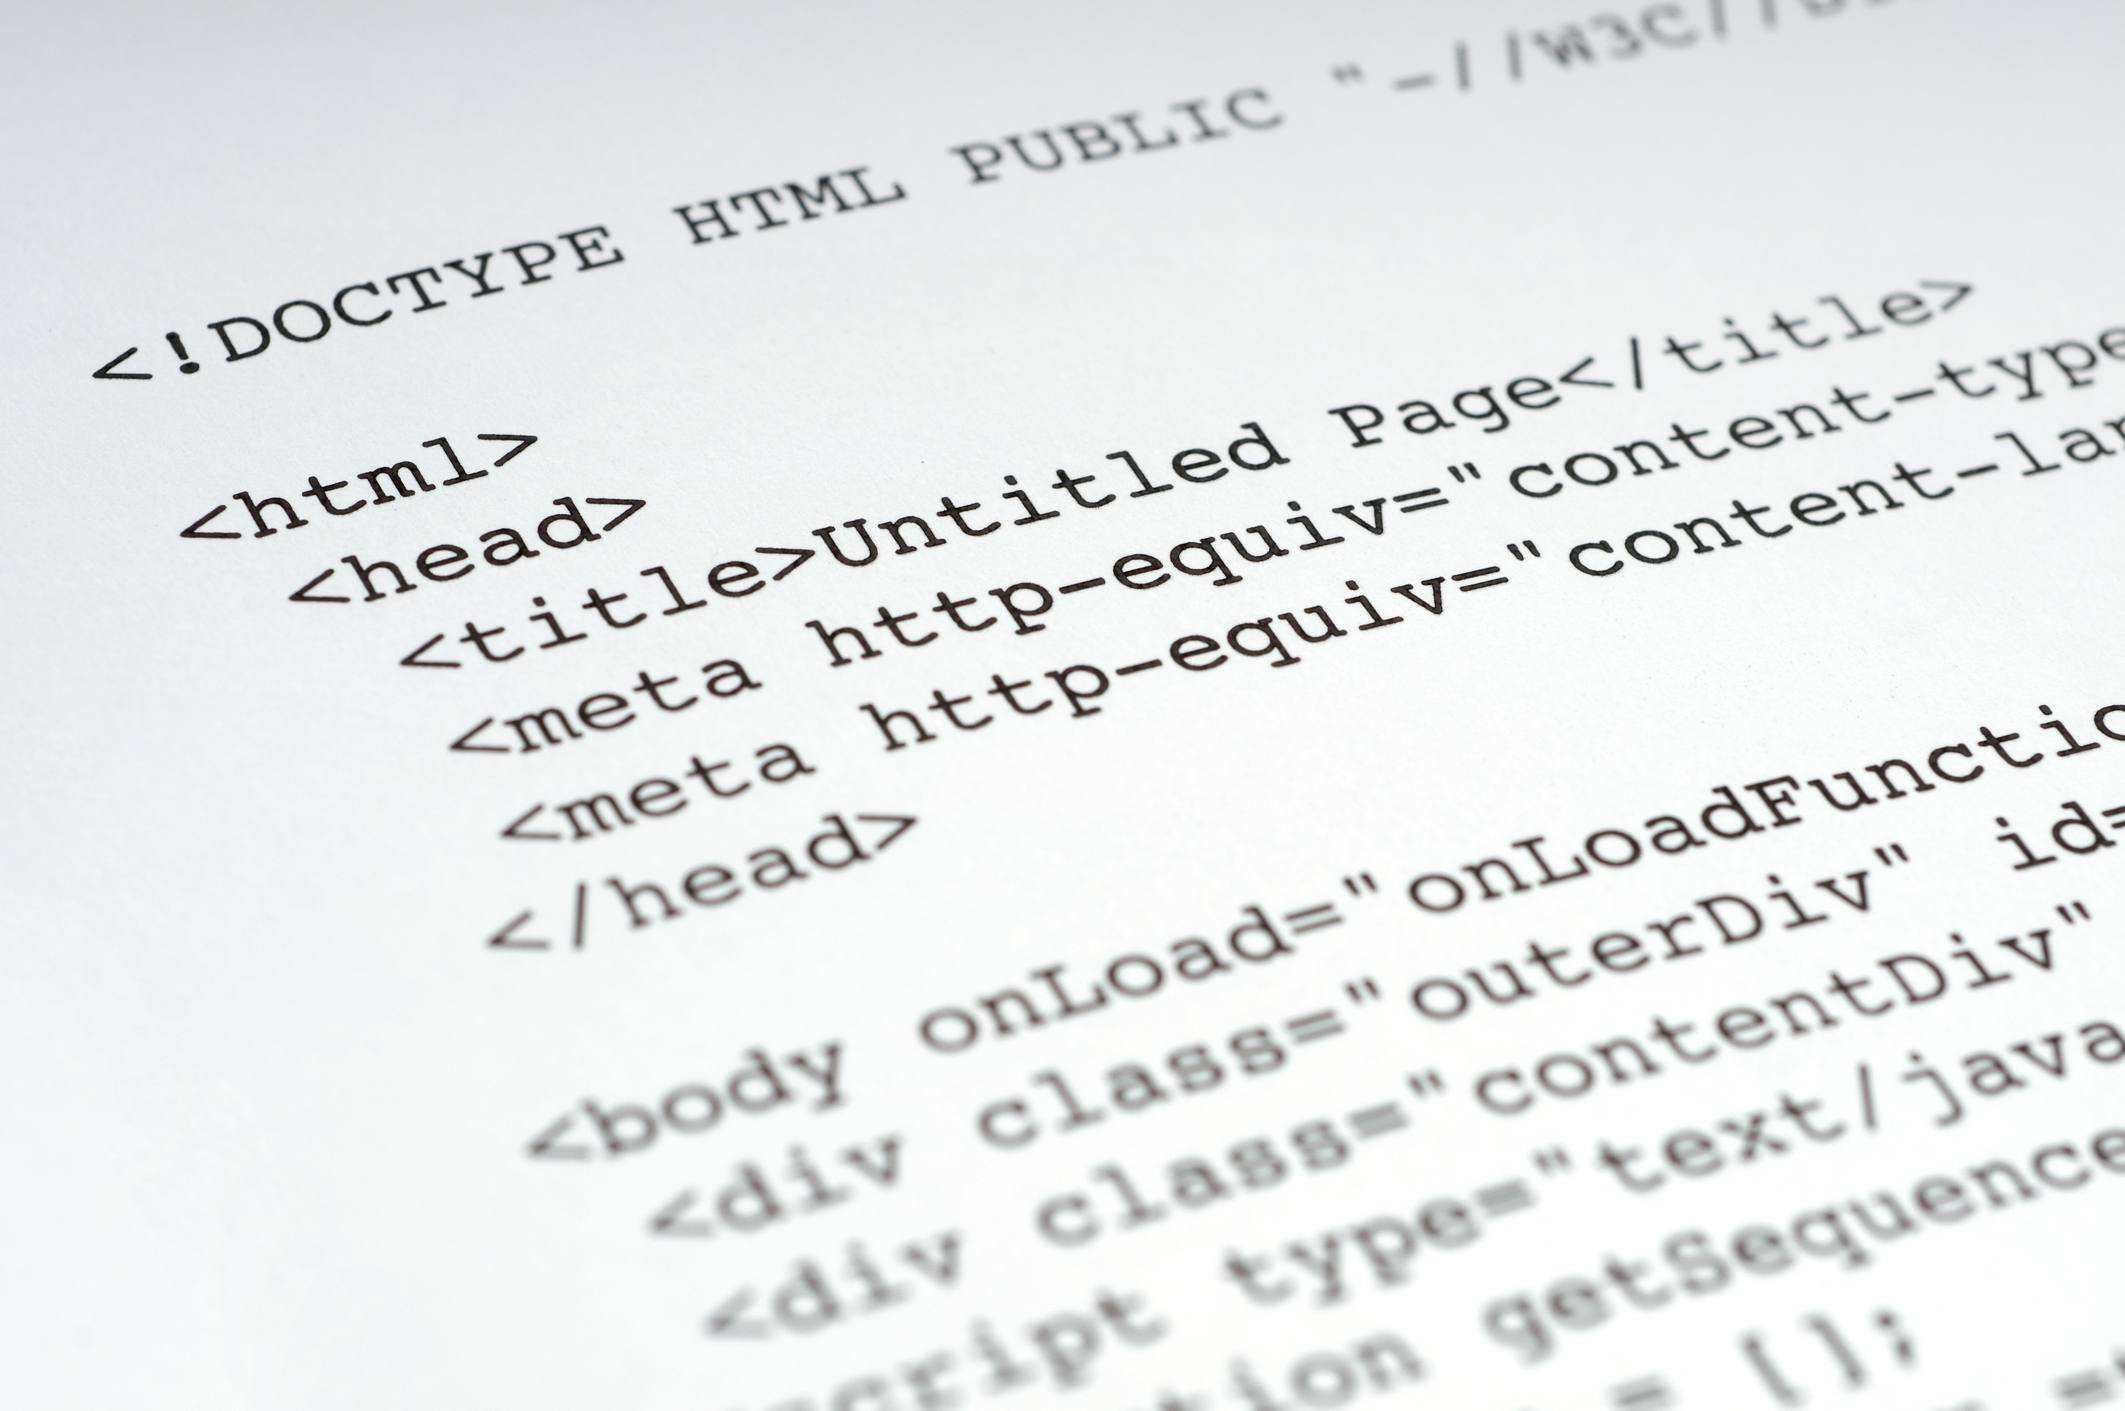 HTML code laid out on a page